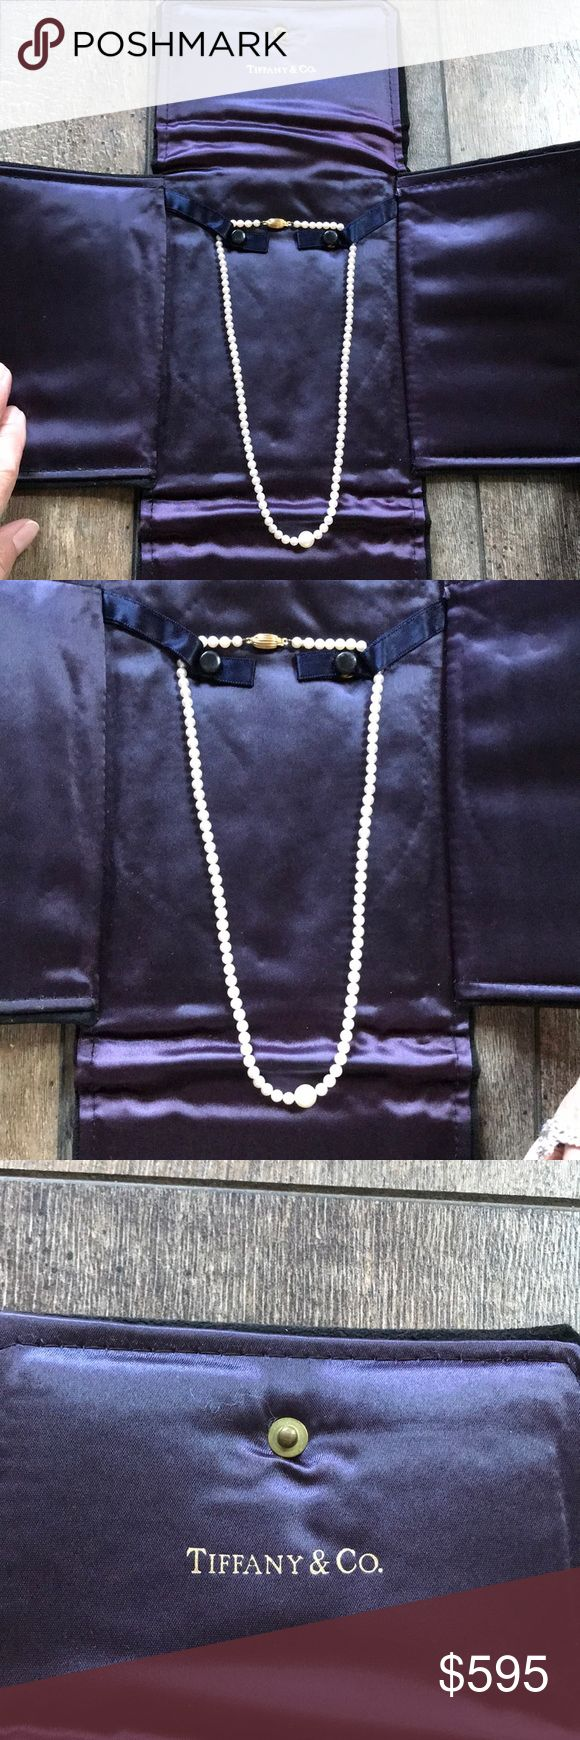 Beautiful authentic Tiffany pearls, just stunning! Beautiful Tiffany pearl necklace, individually hand knotted, gold clasp. Paid $800 barely worn, just stunning!!!! Tiffany & Co. Jewelry Necklaces